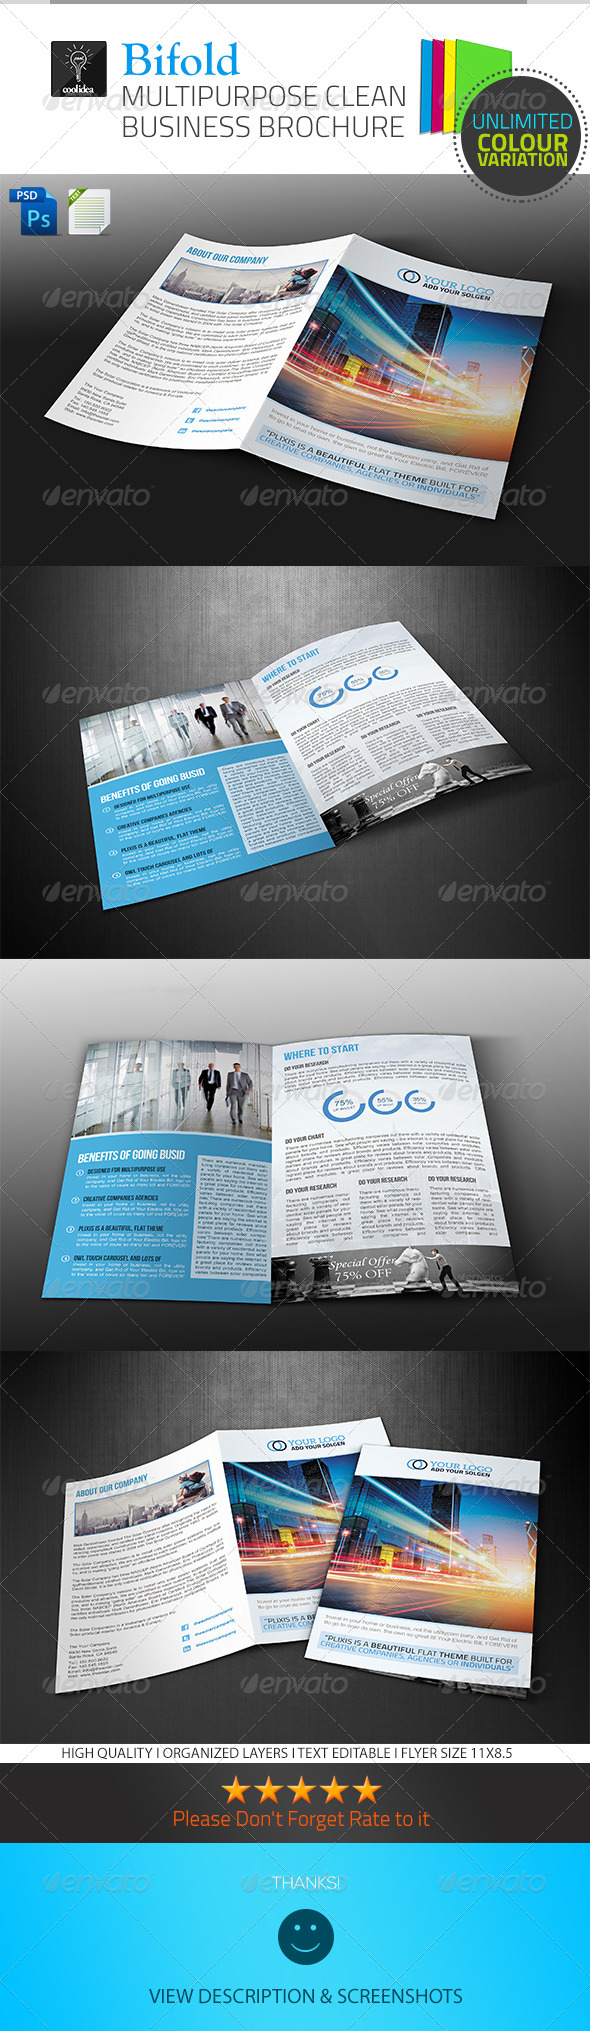 GraphicRiver A4 Business Brochure Bifold 6609060